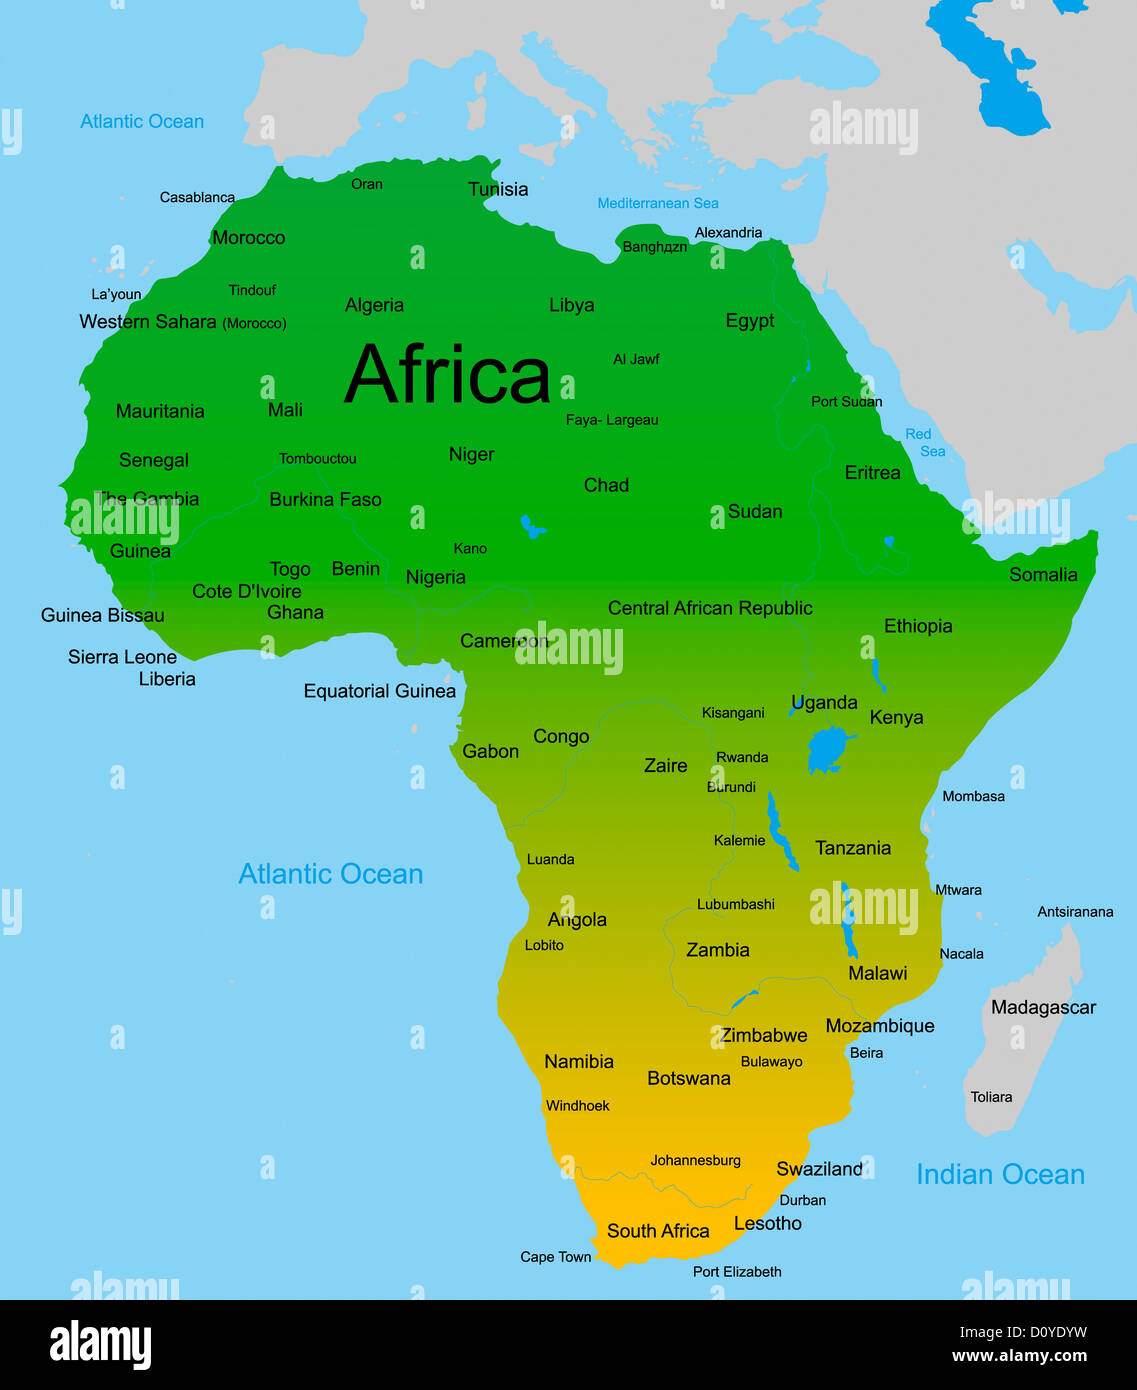 map of african continent Stock Photo: 52234781 - Alamy